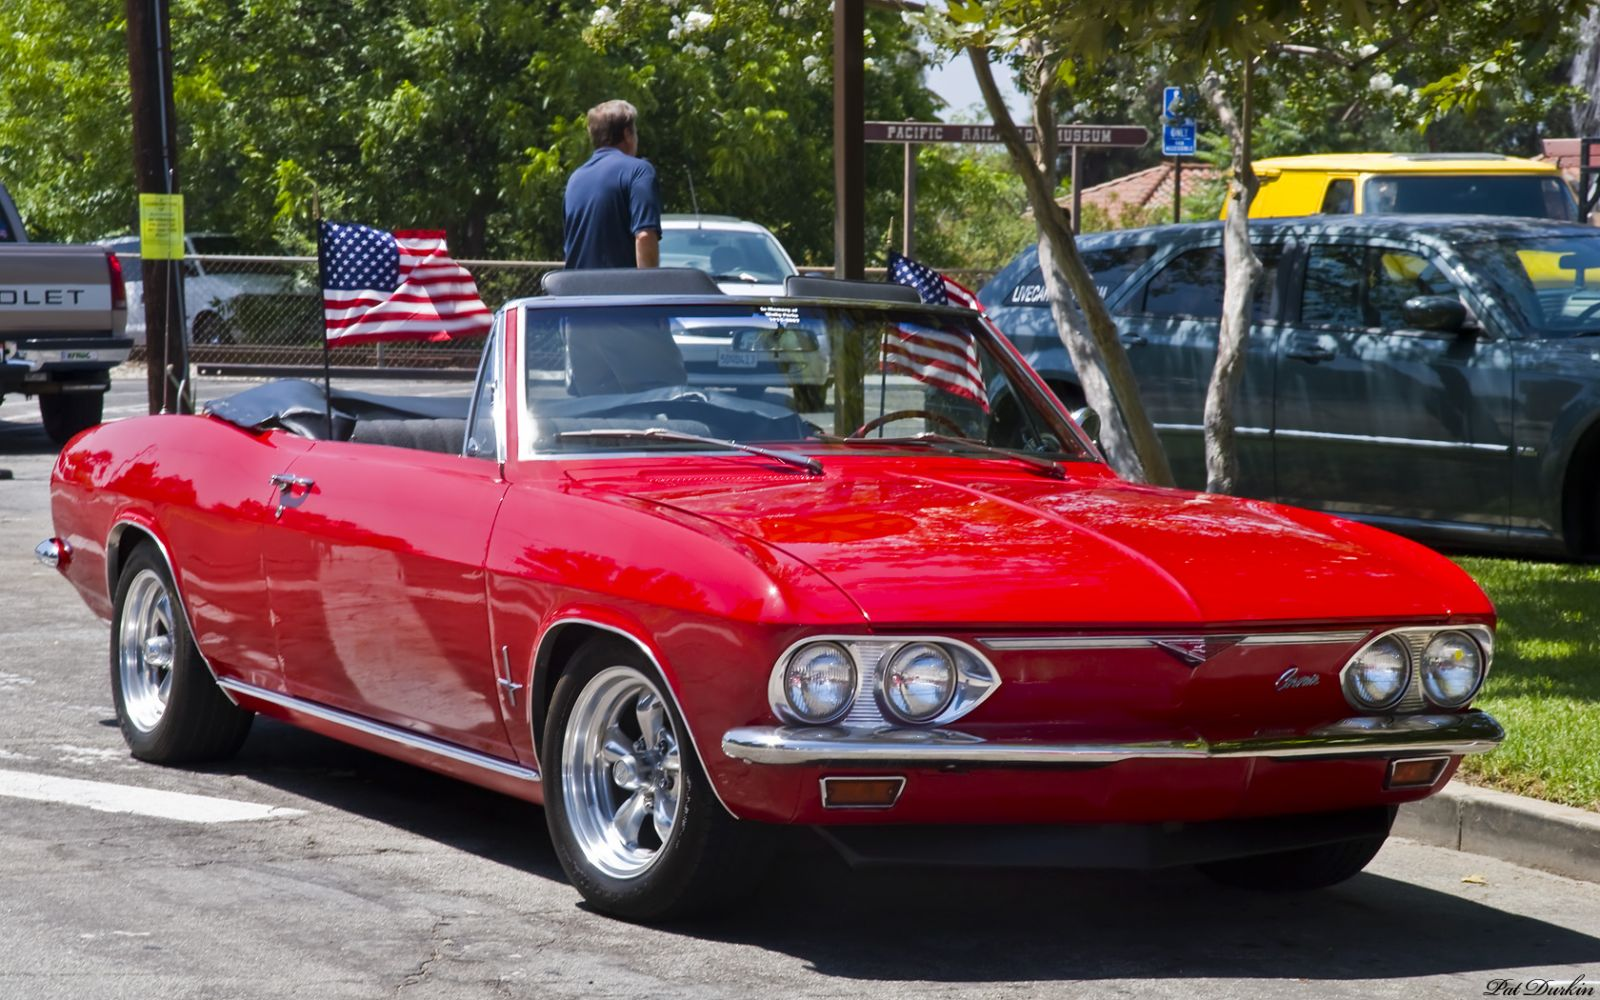 All Chevy chevy corvair monza : 1967 Chevrolet Corvair Monza Convertible - red - fvr - General ...